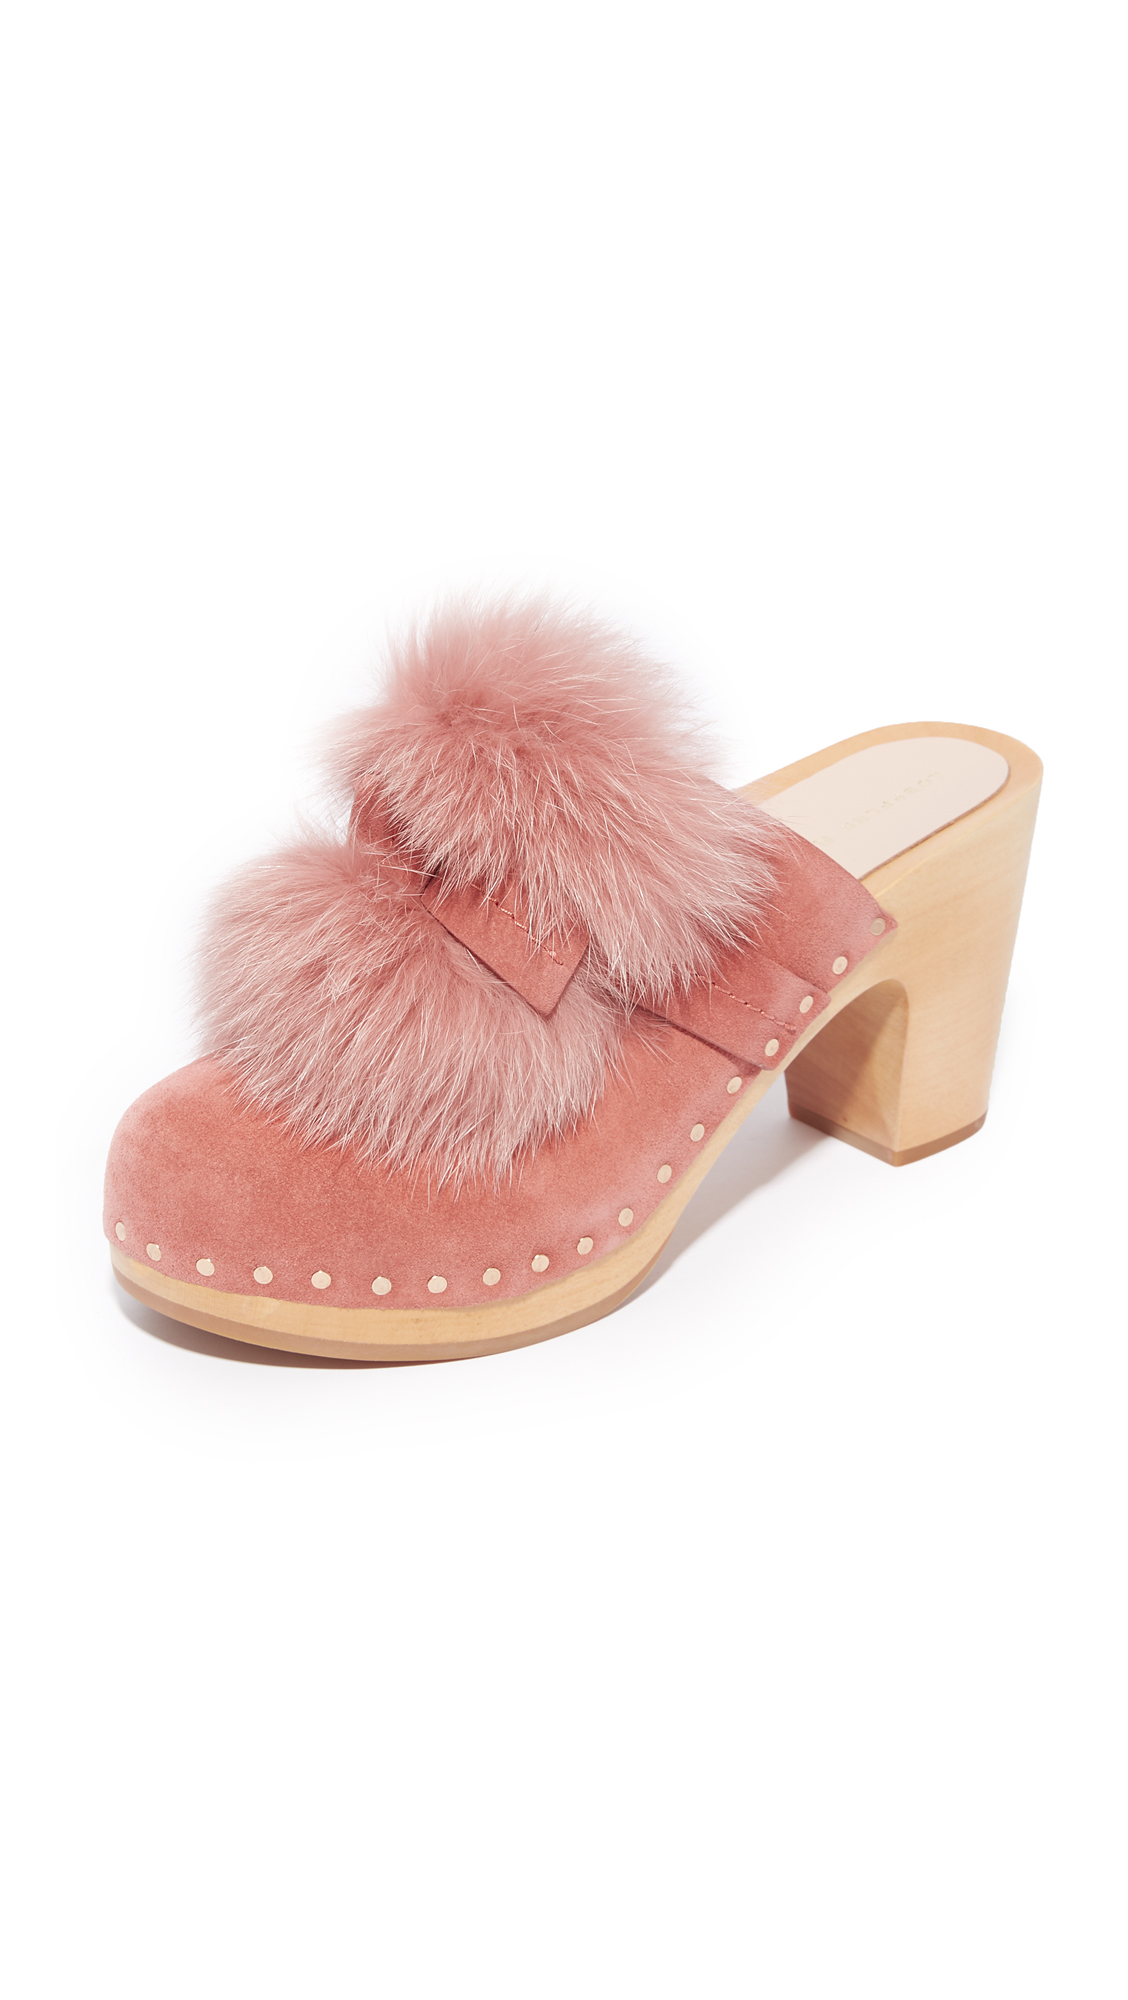 Loeffler Randall Phillips Platform Fur Clog Mules - Dusty Rose/Dusty Rose